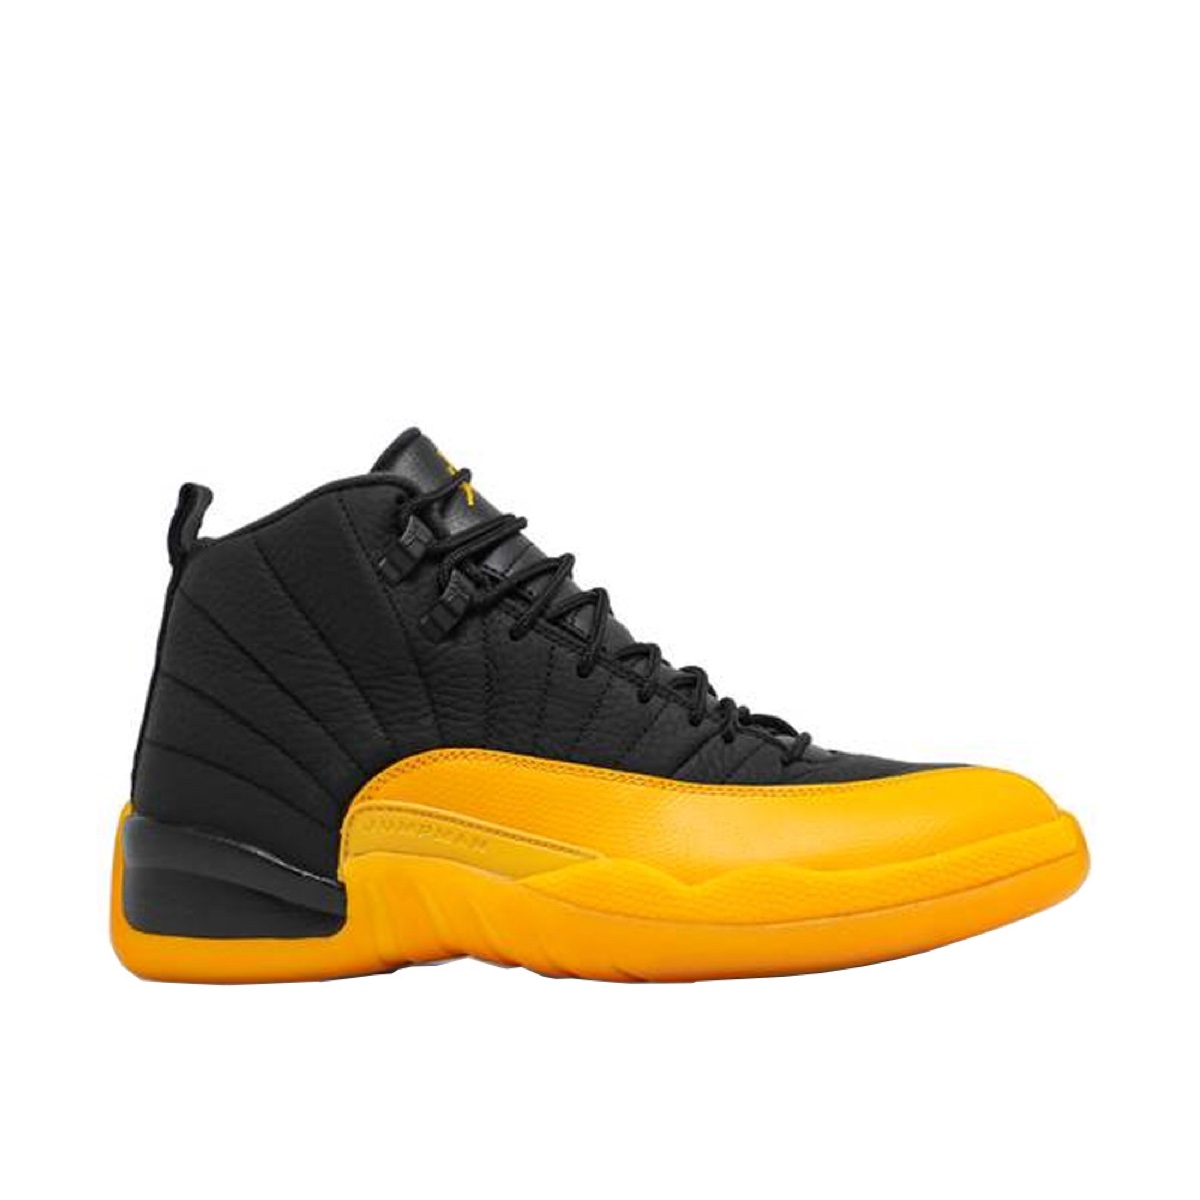 Jordan 12 Retro Black University Gold